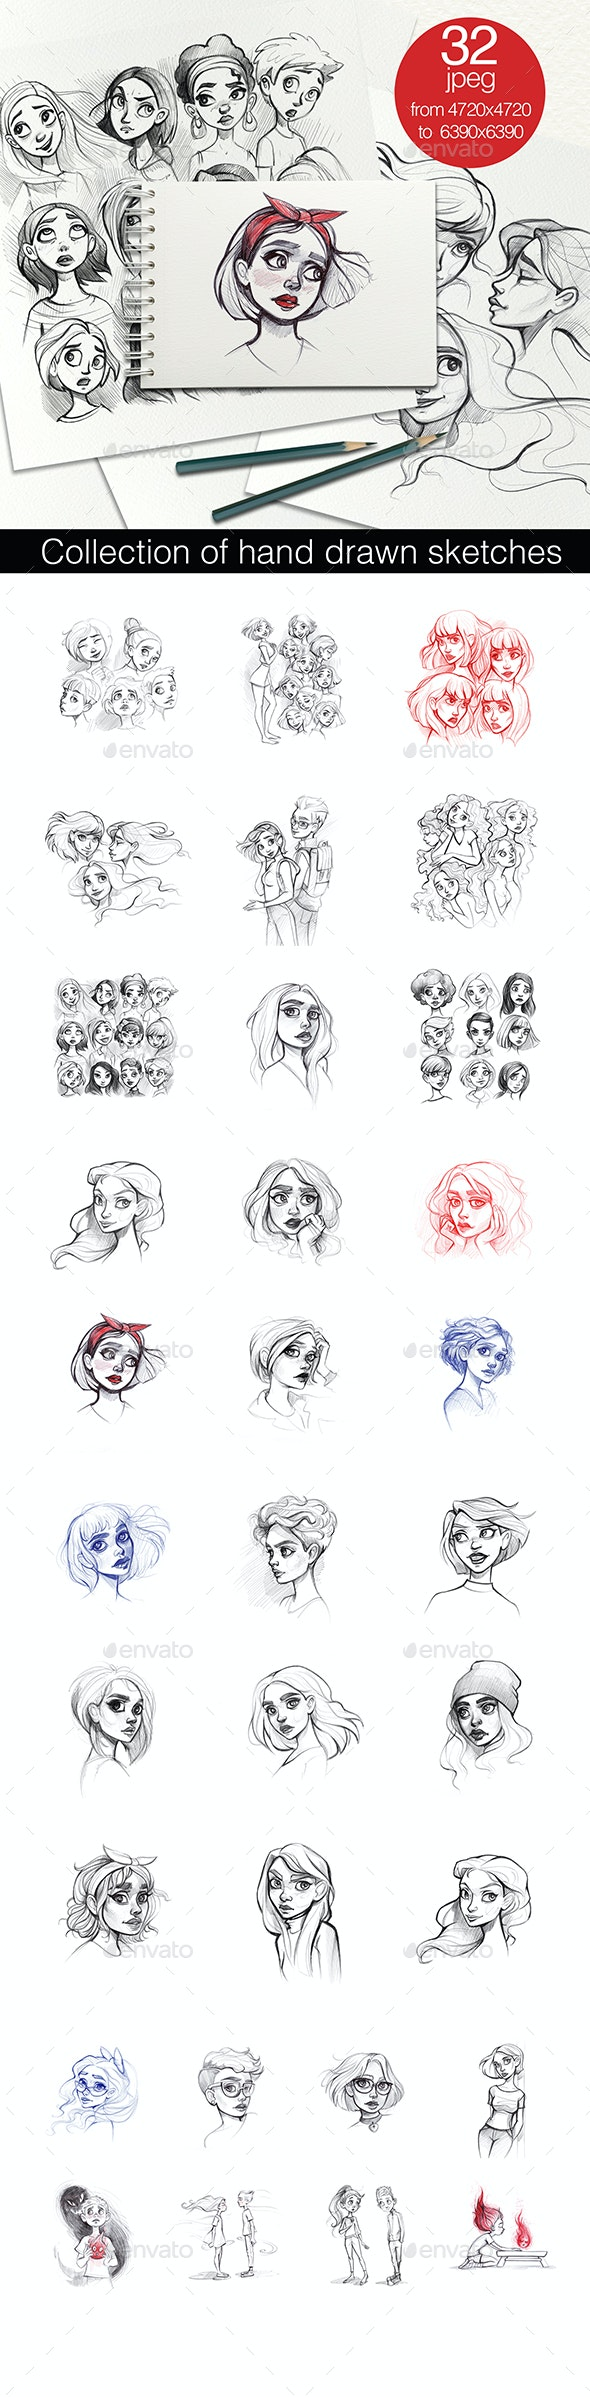 Collection of hand drawn sketches - Characters Illustrations